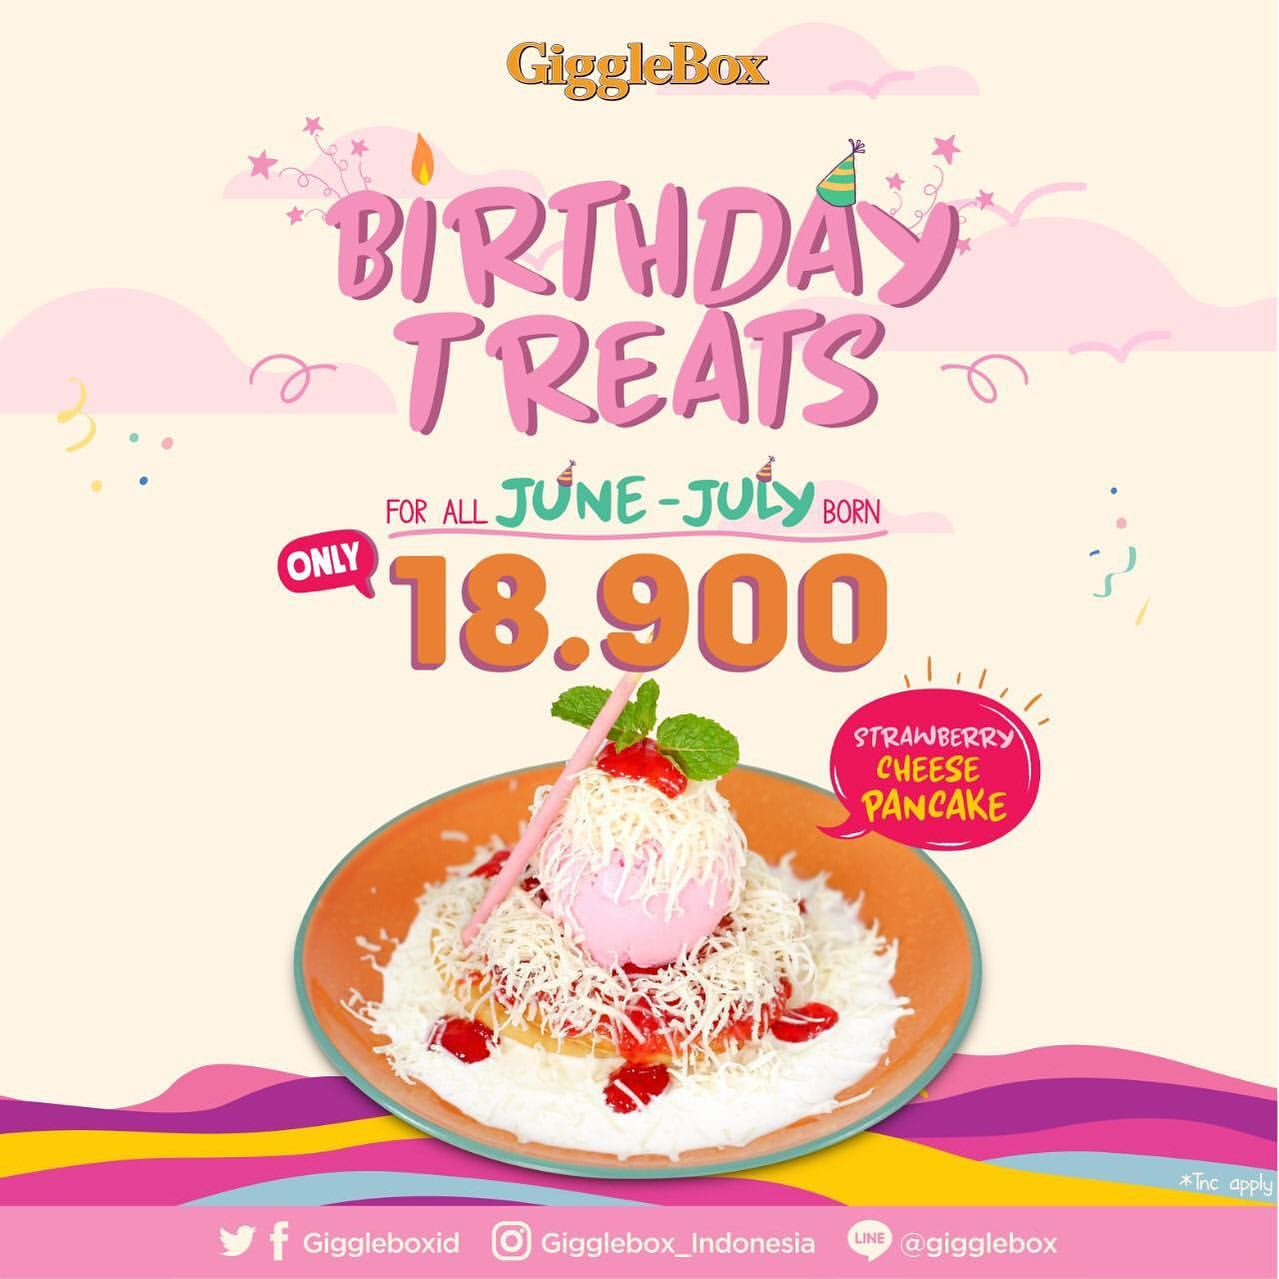 Diskon GIGGLE BOX Birthday Treats Promo Strawberry Cheese Pancake only Rp.18.900